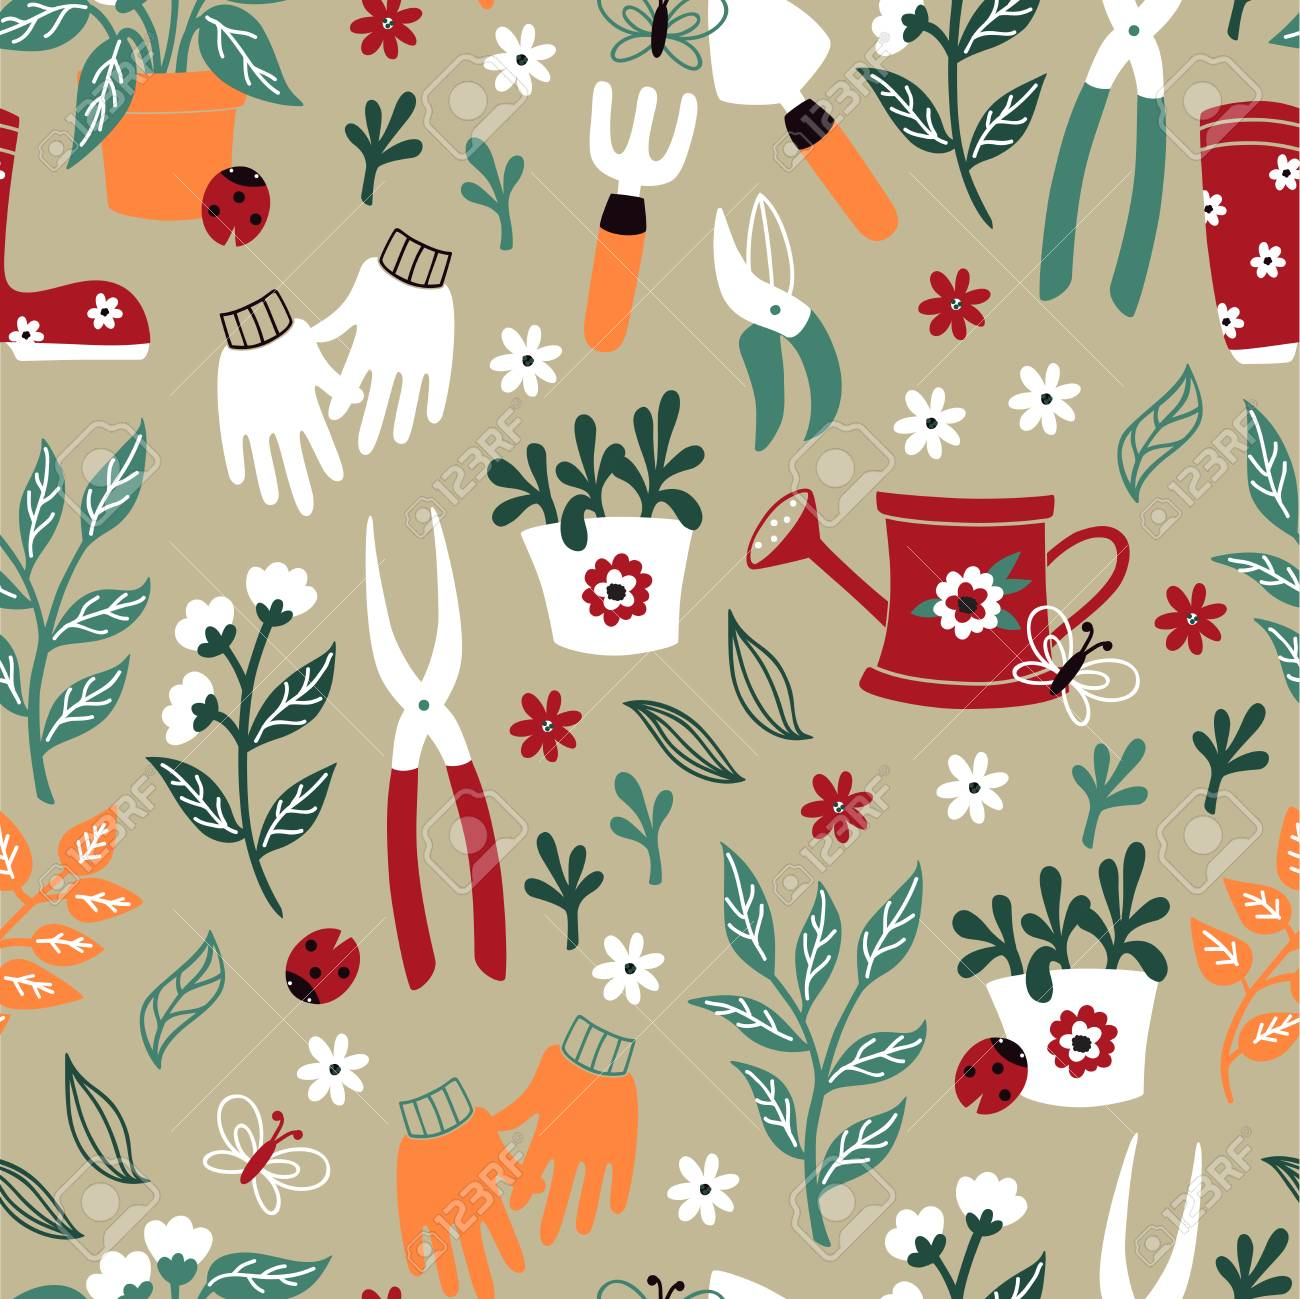 Gardening Pattern For Wallpaper Royalty Free Cliparts Vectors And Stock Illustration Image 100482941